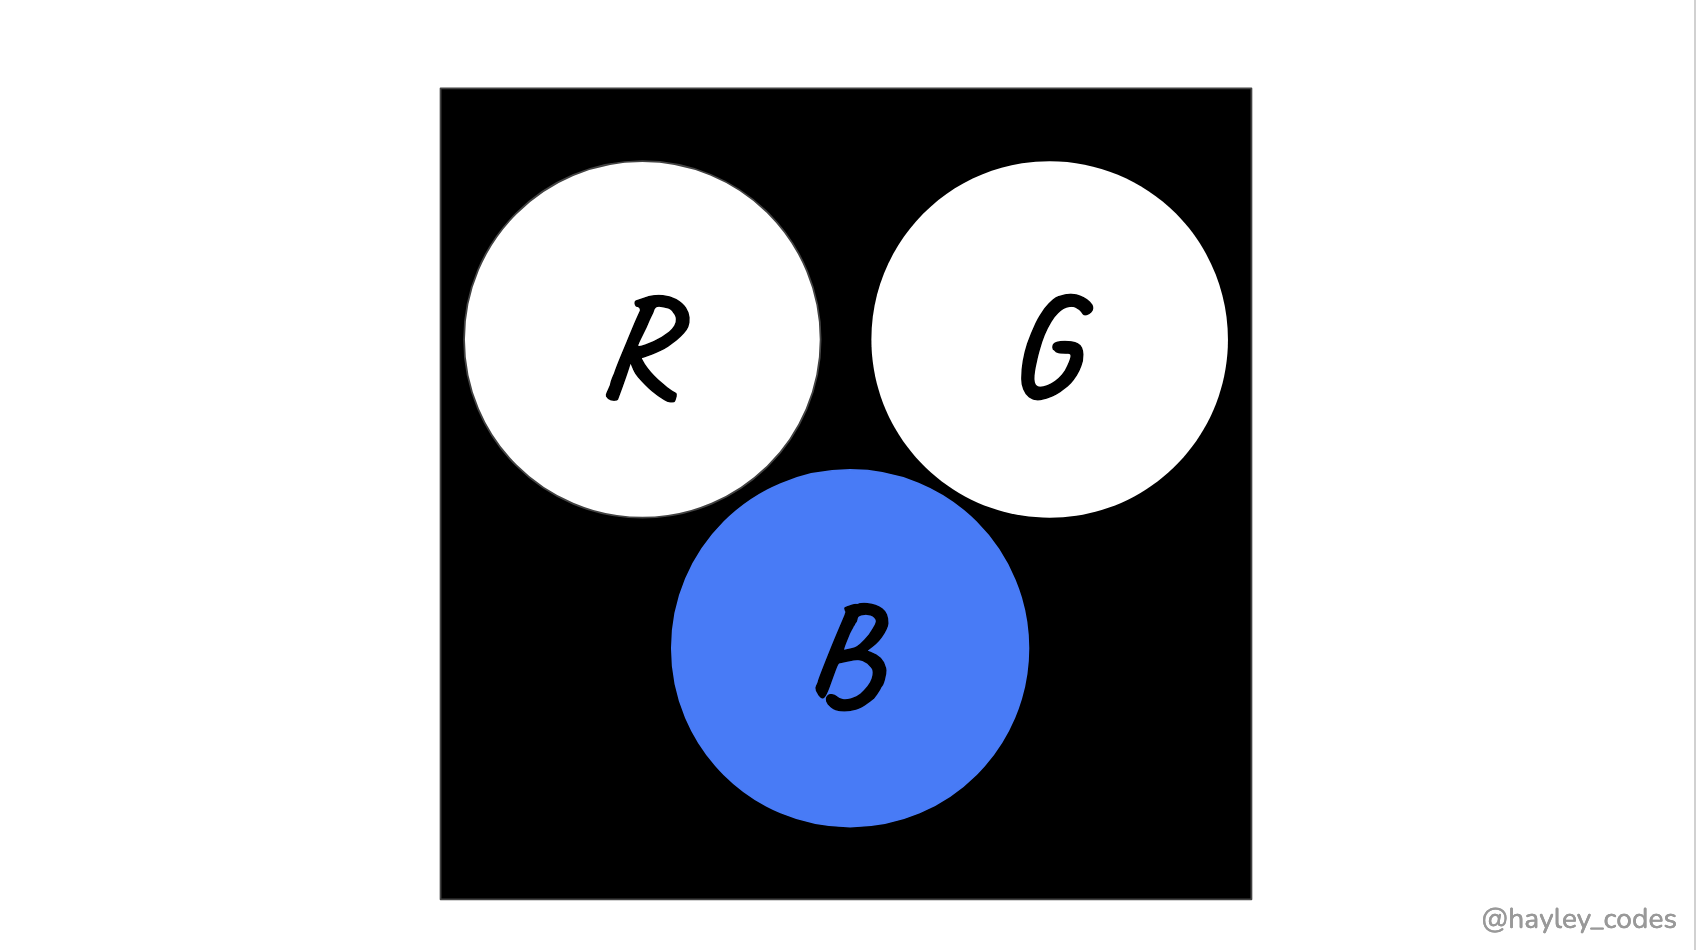 Three circles representing red, green and blue lights. The blue light is turned on.